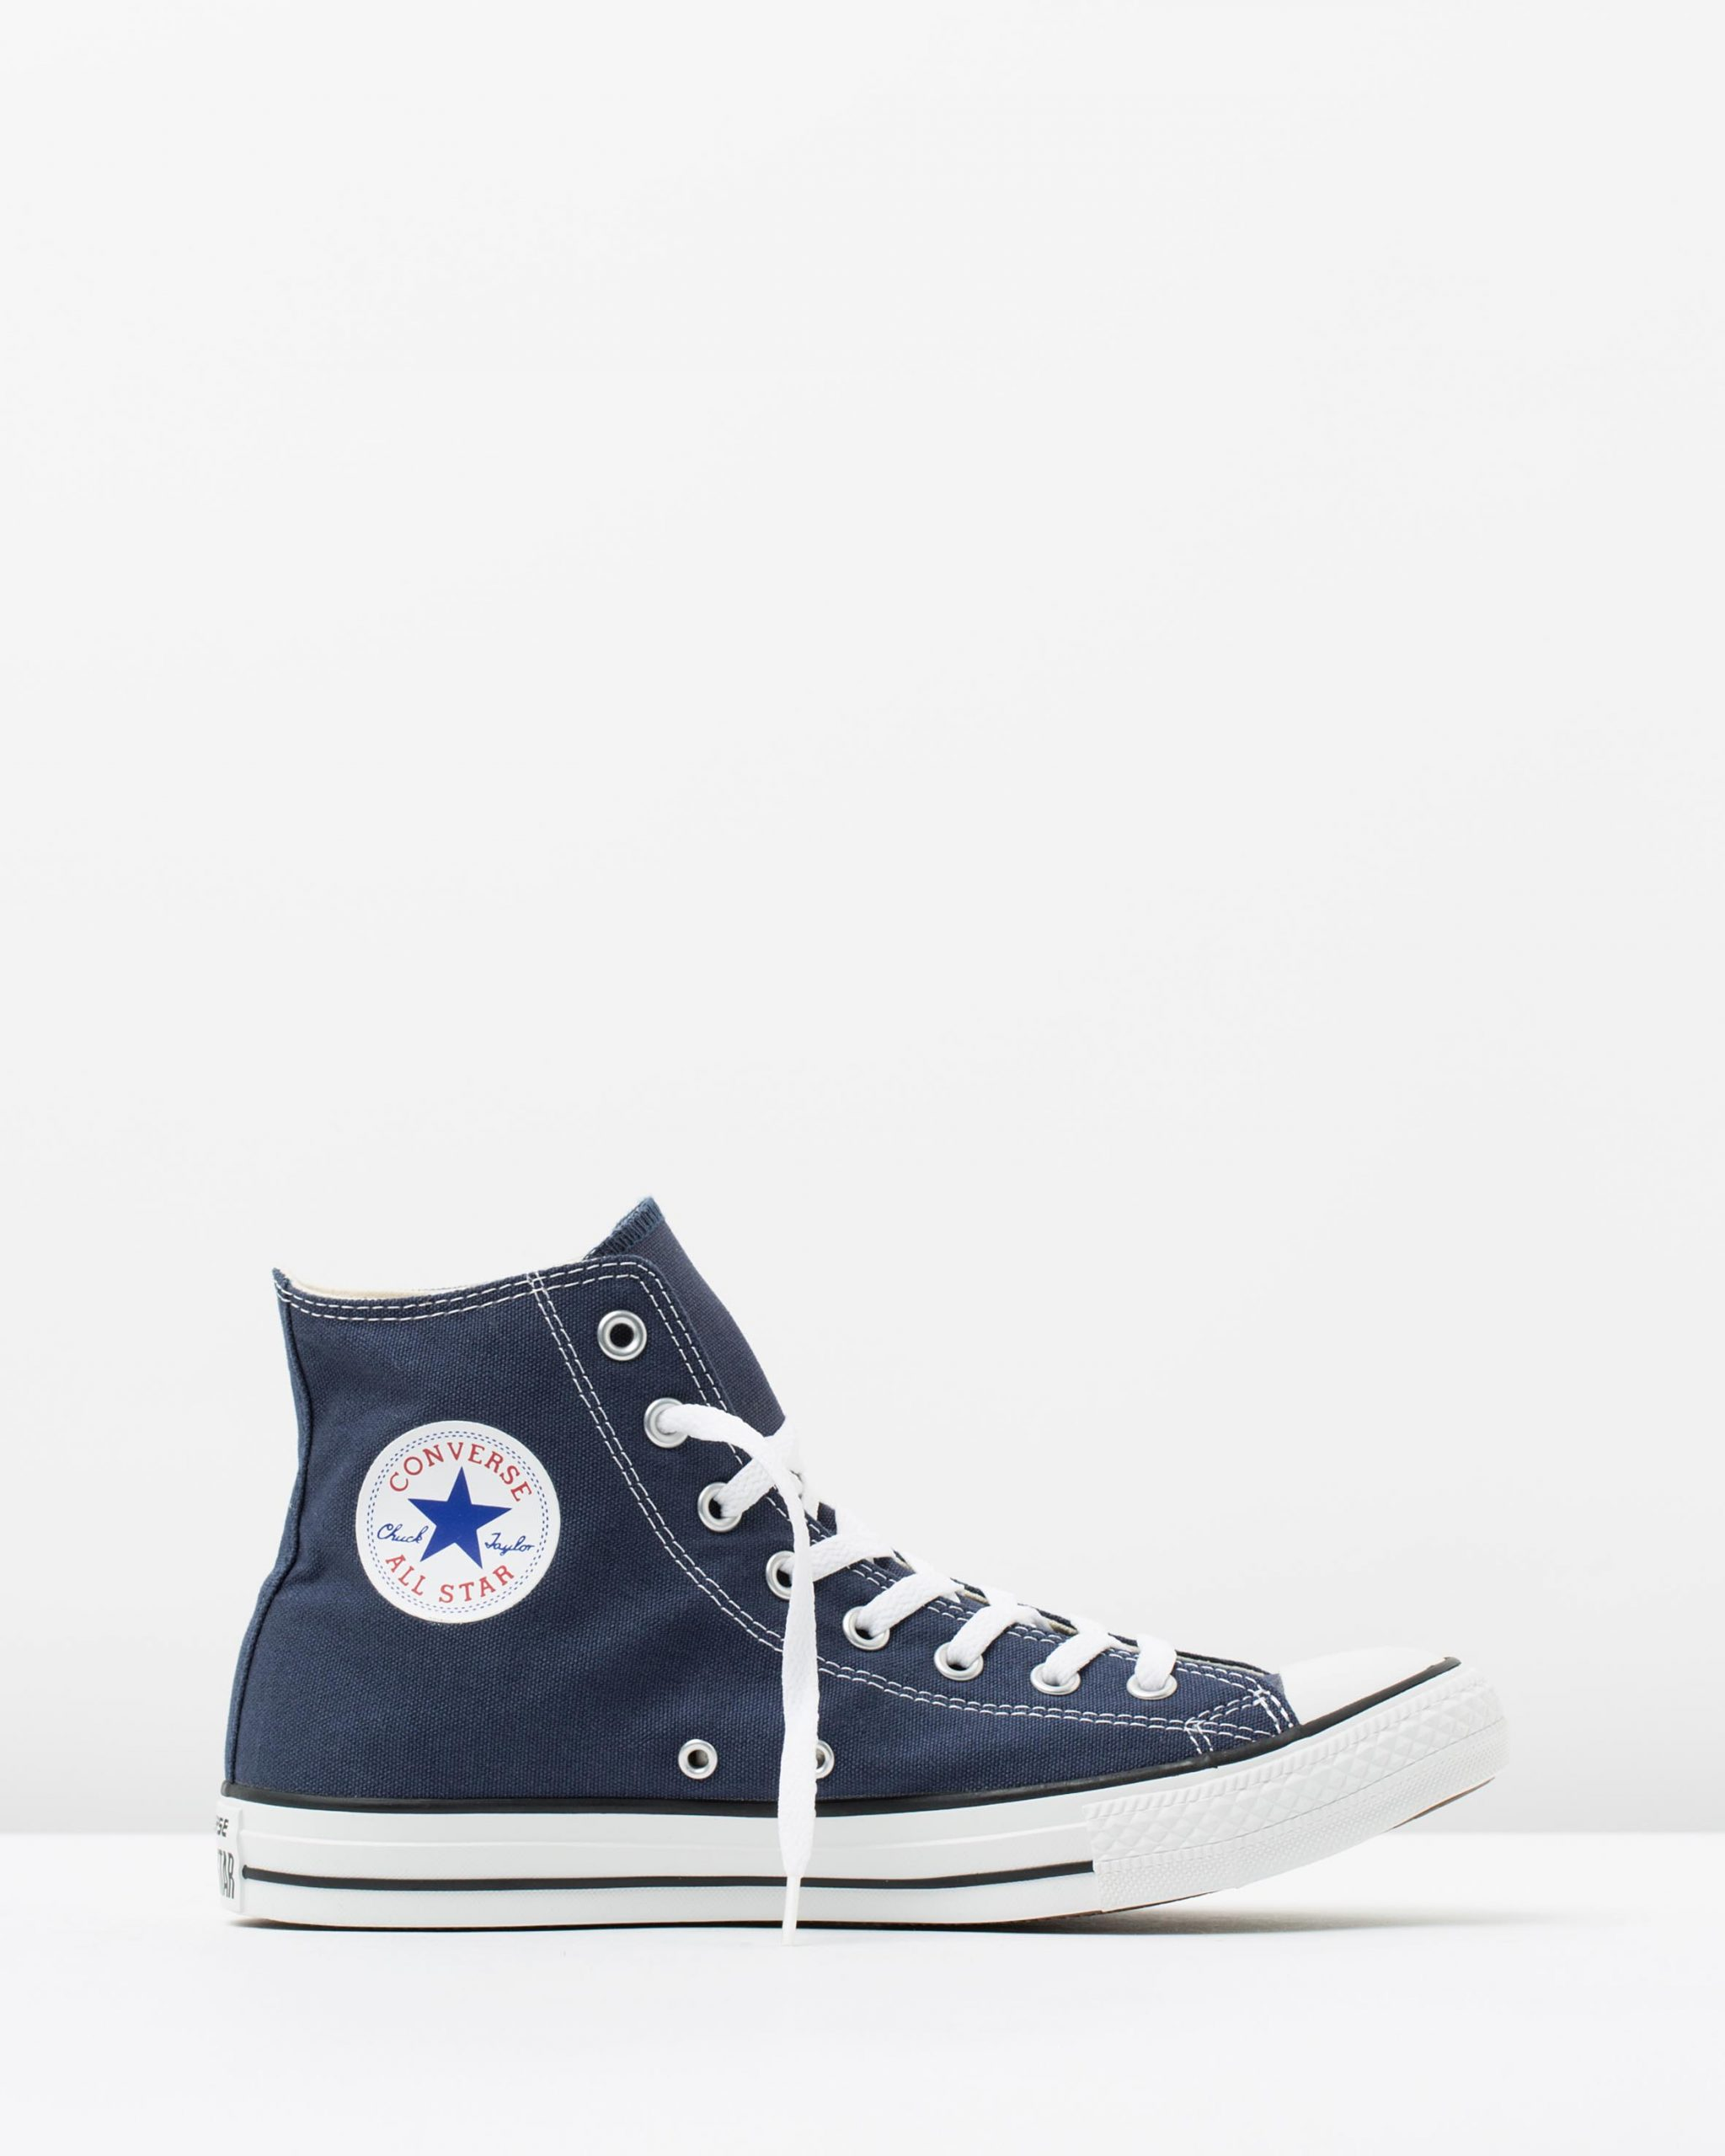 Converse Chuck Taylor All Star Hi Womens Navy